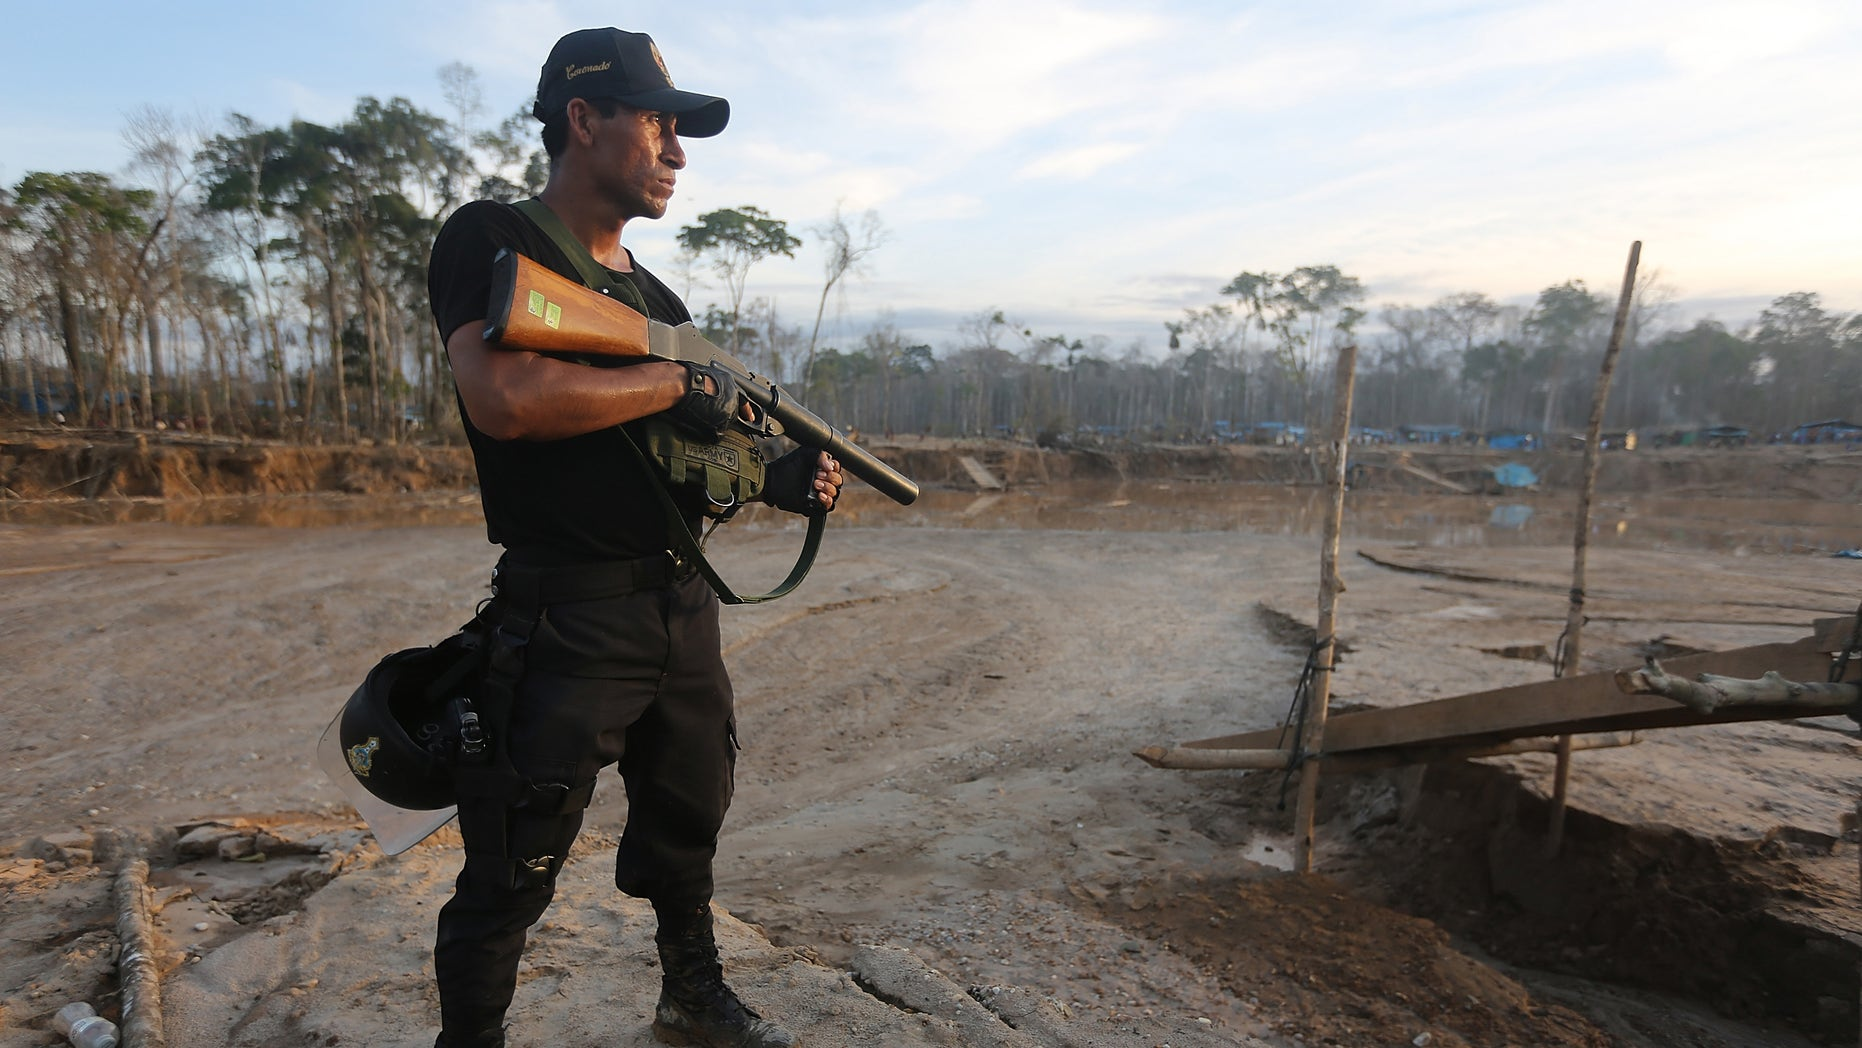 MADRE DE DIOS REGION, PERU - NOVEMBER 17:  A National Police officer searches an illegal mining operation in the Amazon lowlands on November 17, 2013 in Madre de Dios region, Peru. Police eventually destroyed three pieces of illegal mining equipment in the area. The biologically diverse Madre de Dios ('Mother of God') region has seen deforestation from gold mining in the area triple since 2008, when gold prices spiked during global economic turmoil. Small-scale miners are drawn to the area in hopes for higher pay but often face abysmal conditions. Gold is usually amalgamated with mercury during the process of informal mining in the region, which is discharged into the water supply and air, poisoning fish and sickening people in the area. Peru is the largest producer of gold in Latin America and the sixth-largest in the world. Informal mining accounts for roughly 20 percent of the gold production in Peru.  (Photo by Mario Tama/Getty Images)